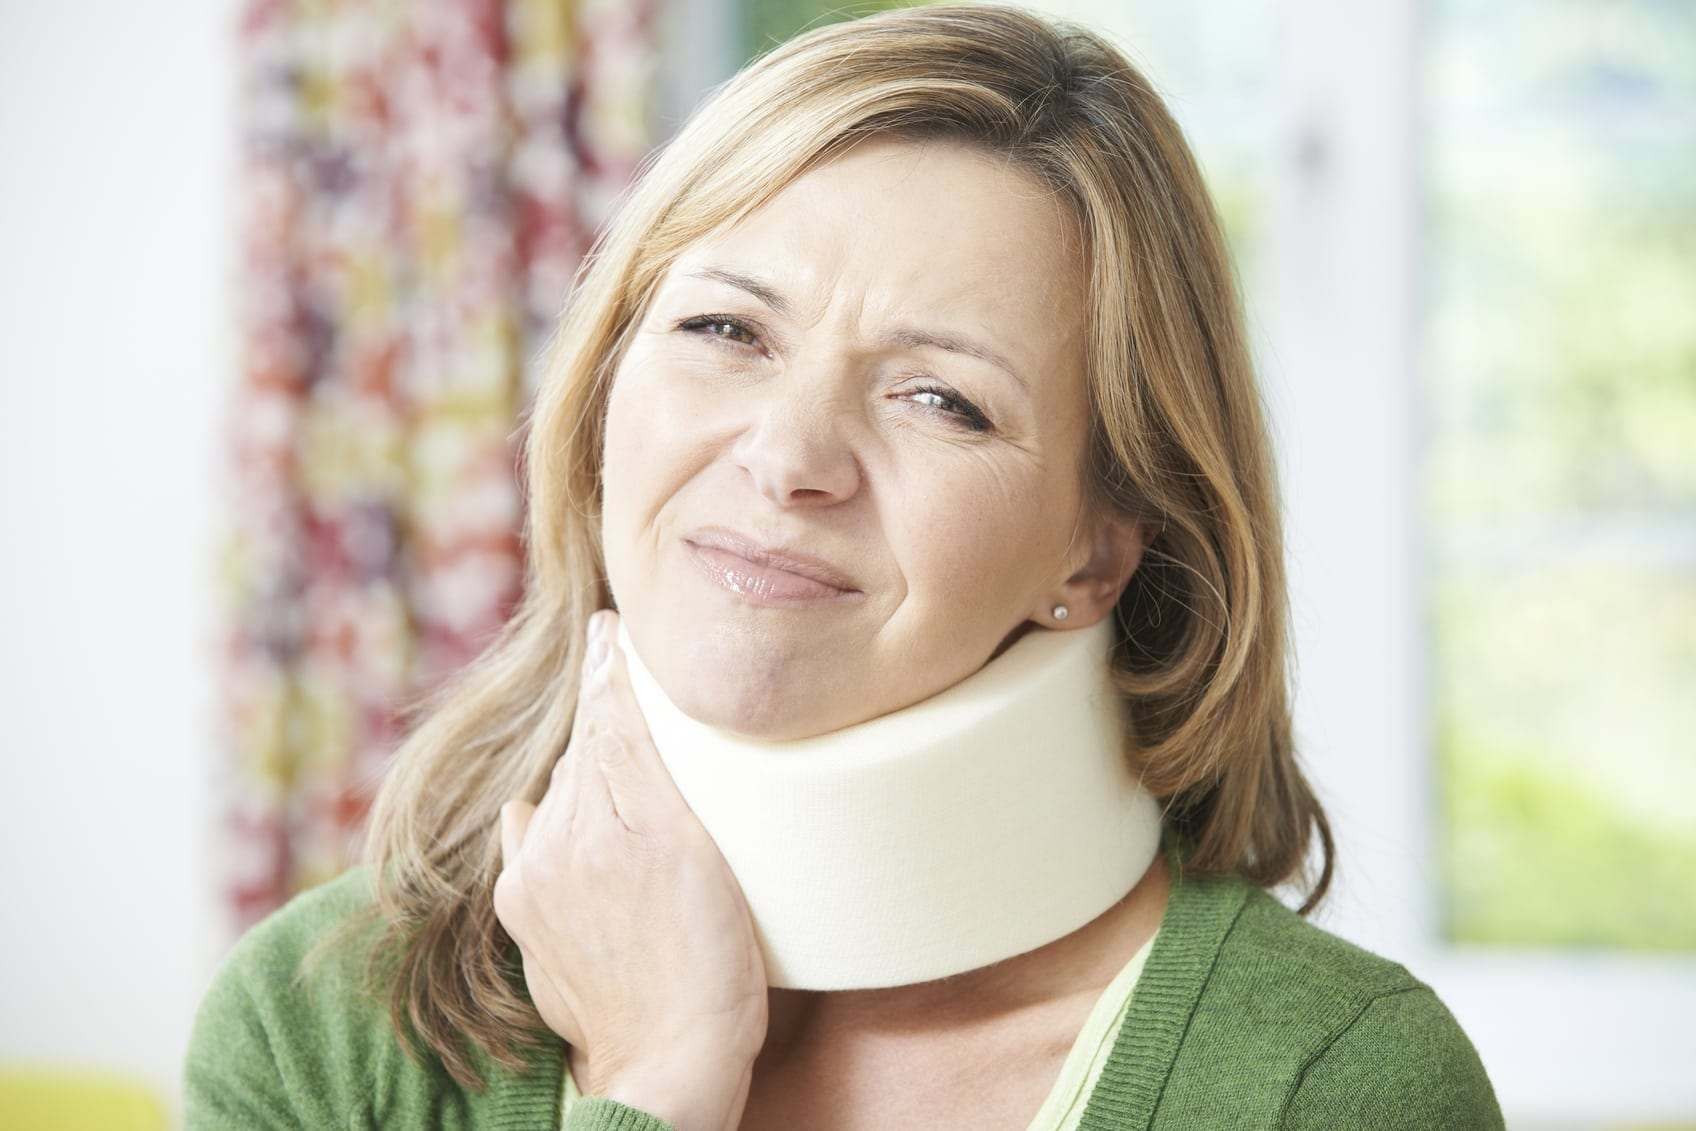 Woman Experiencing Pain While Wearing Neck Brace